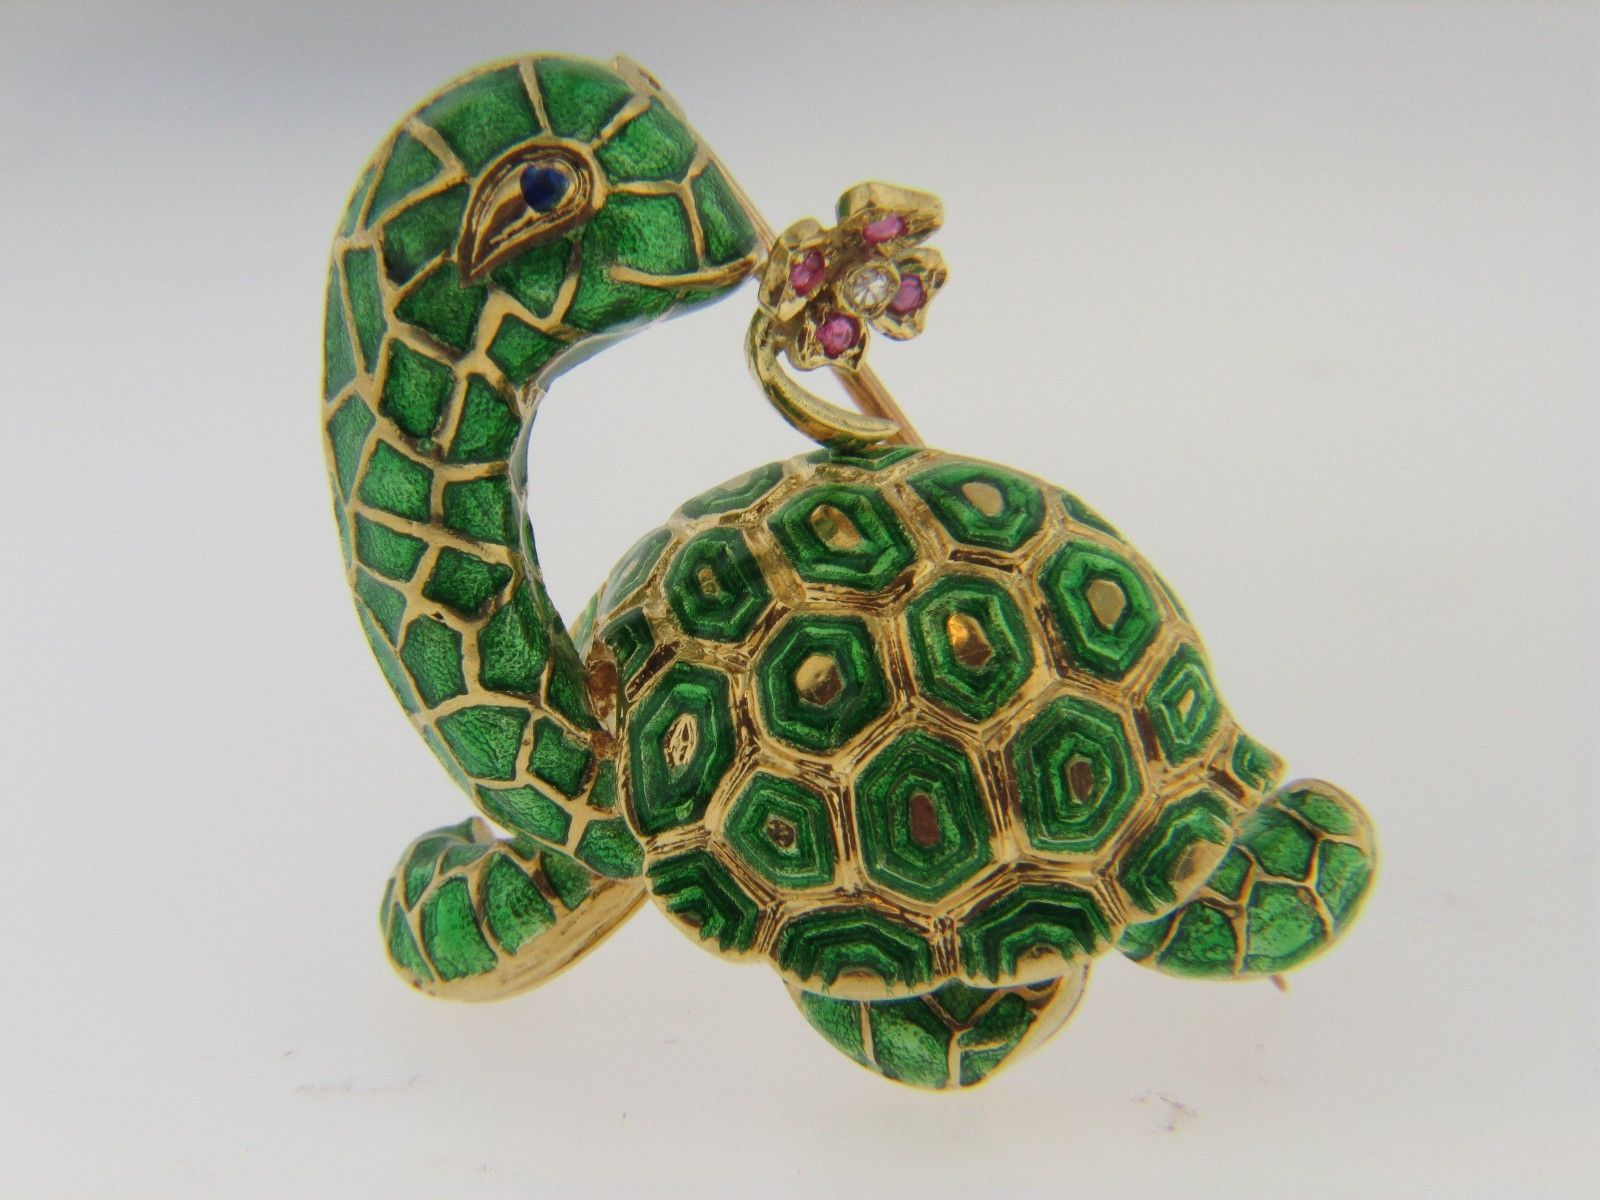 Vintage 1970's 18K Yellow Gold and Green Enamel Turtle Brooch Diamond and Ruby | eBay